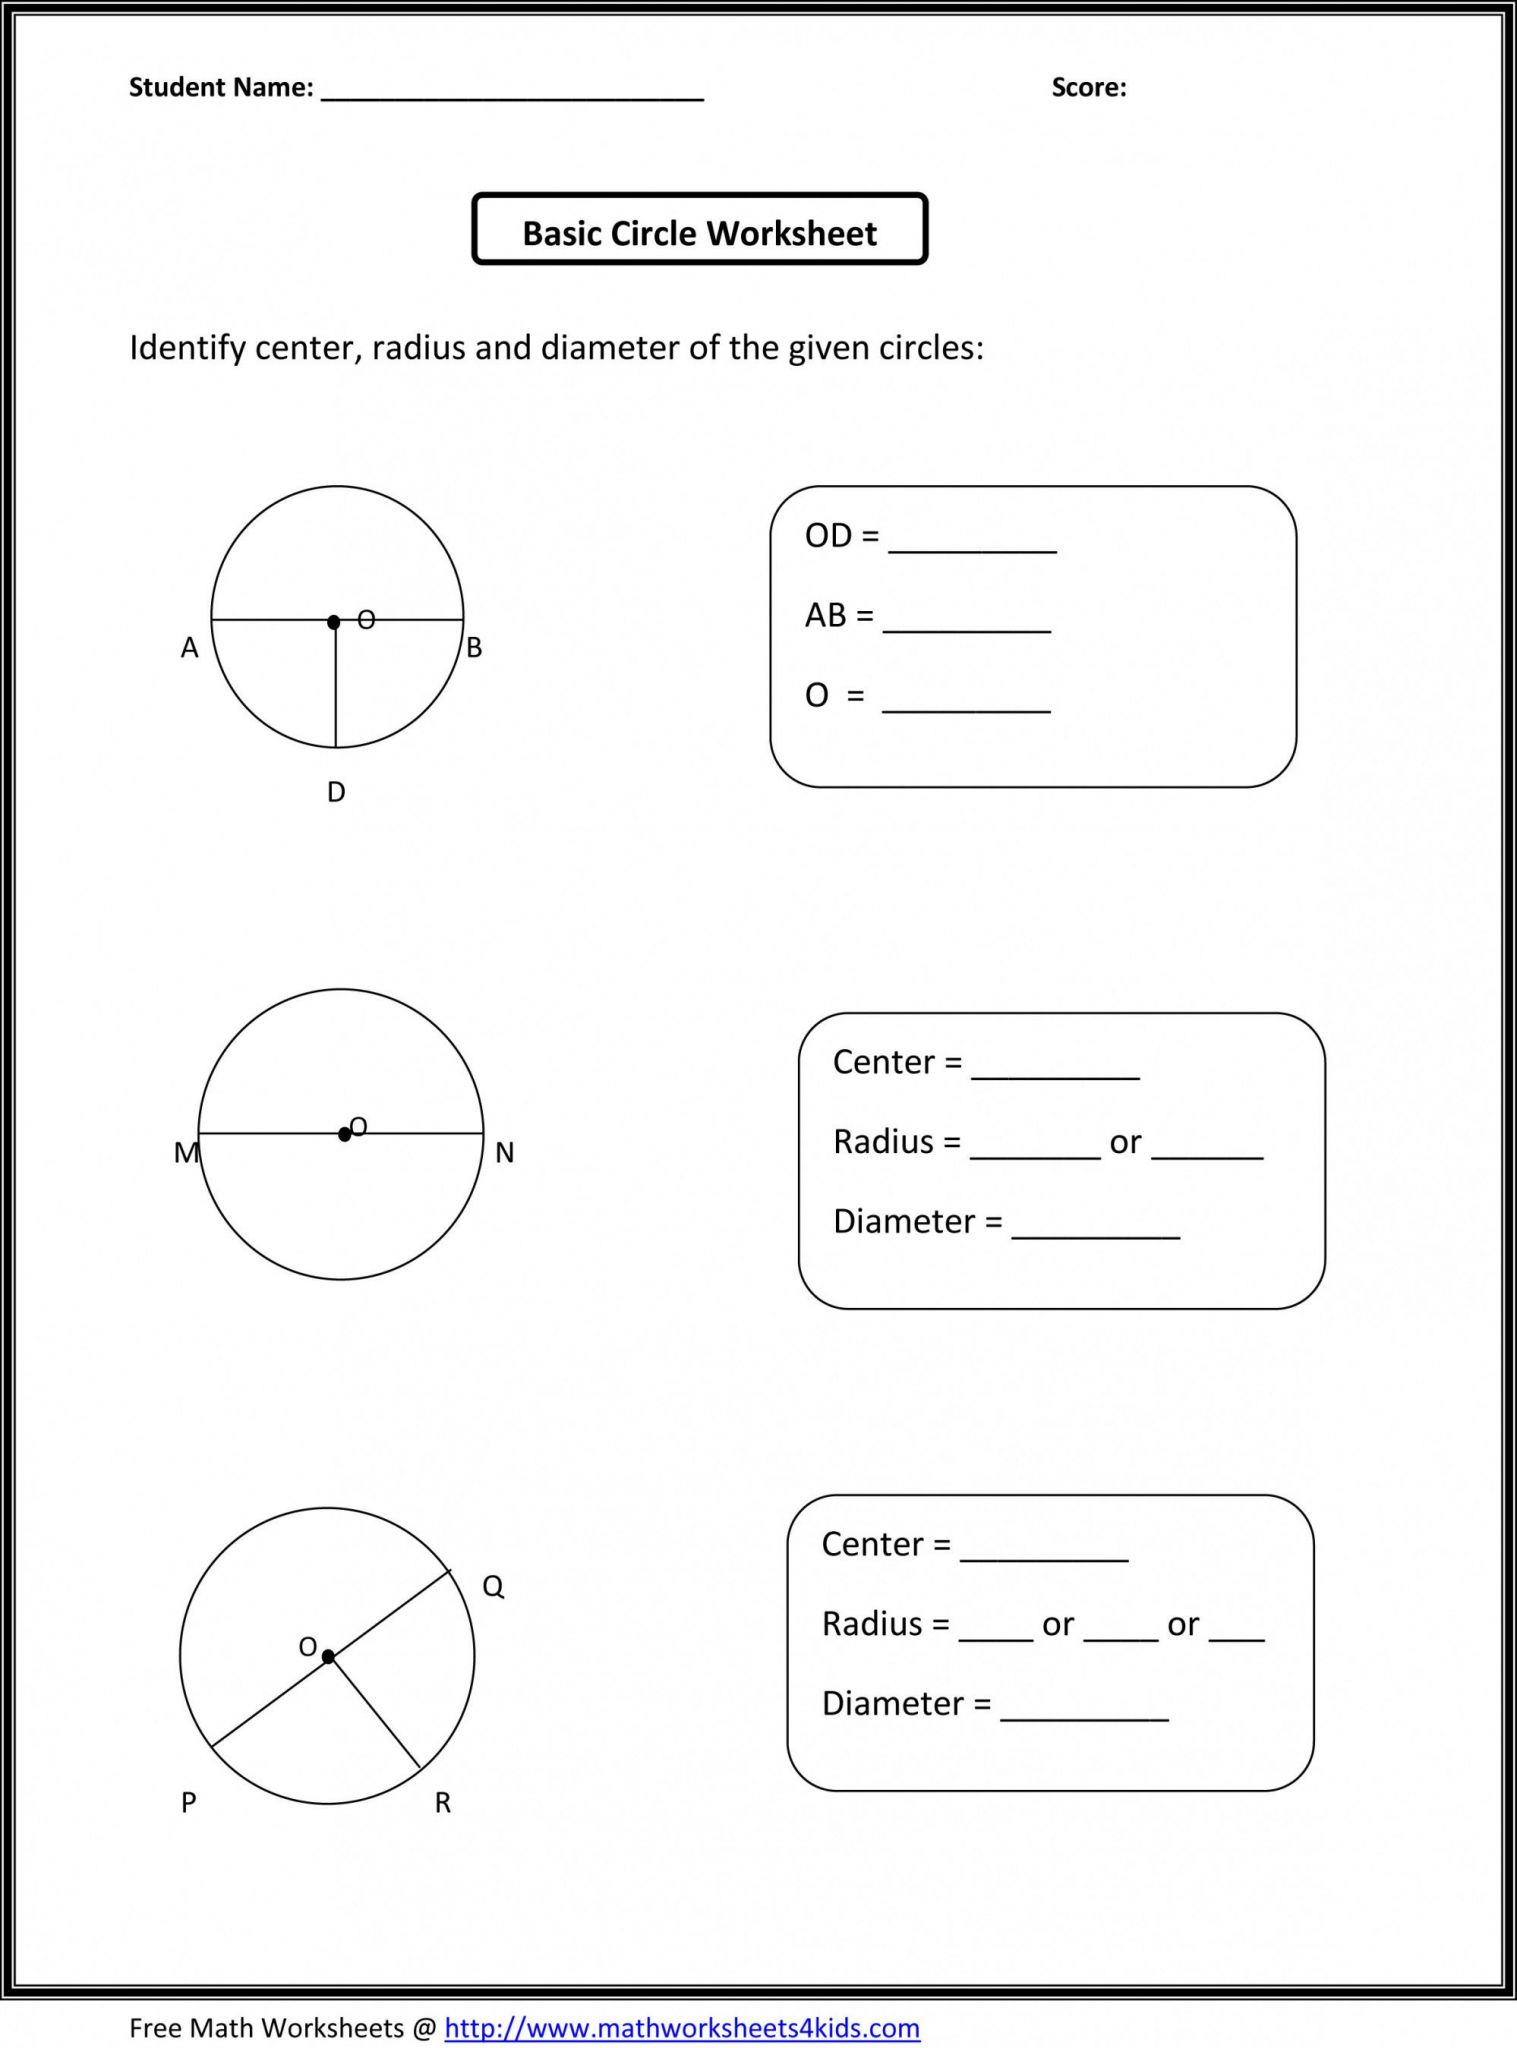 Moving Words Math Worksheet